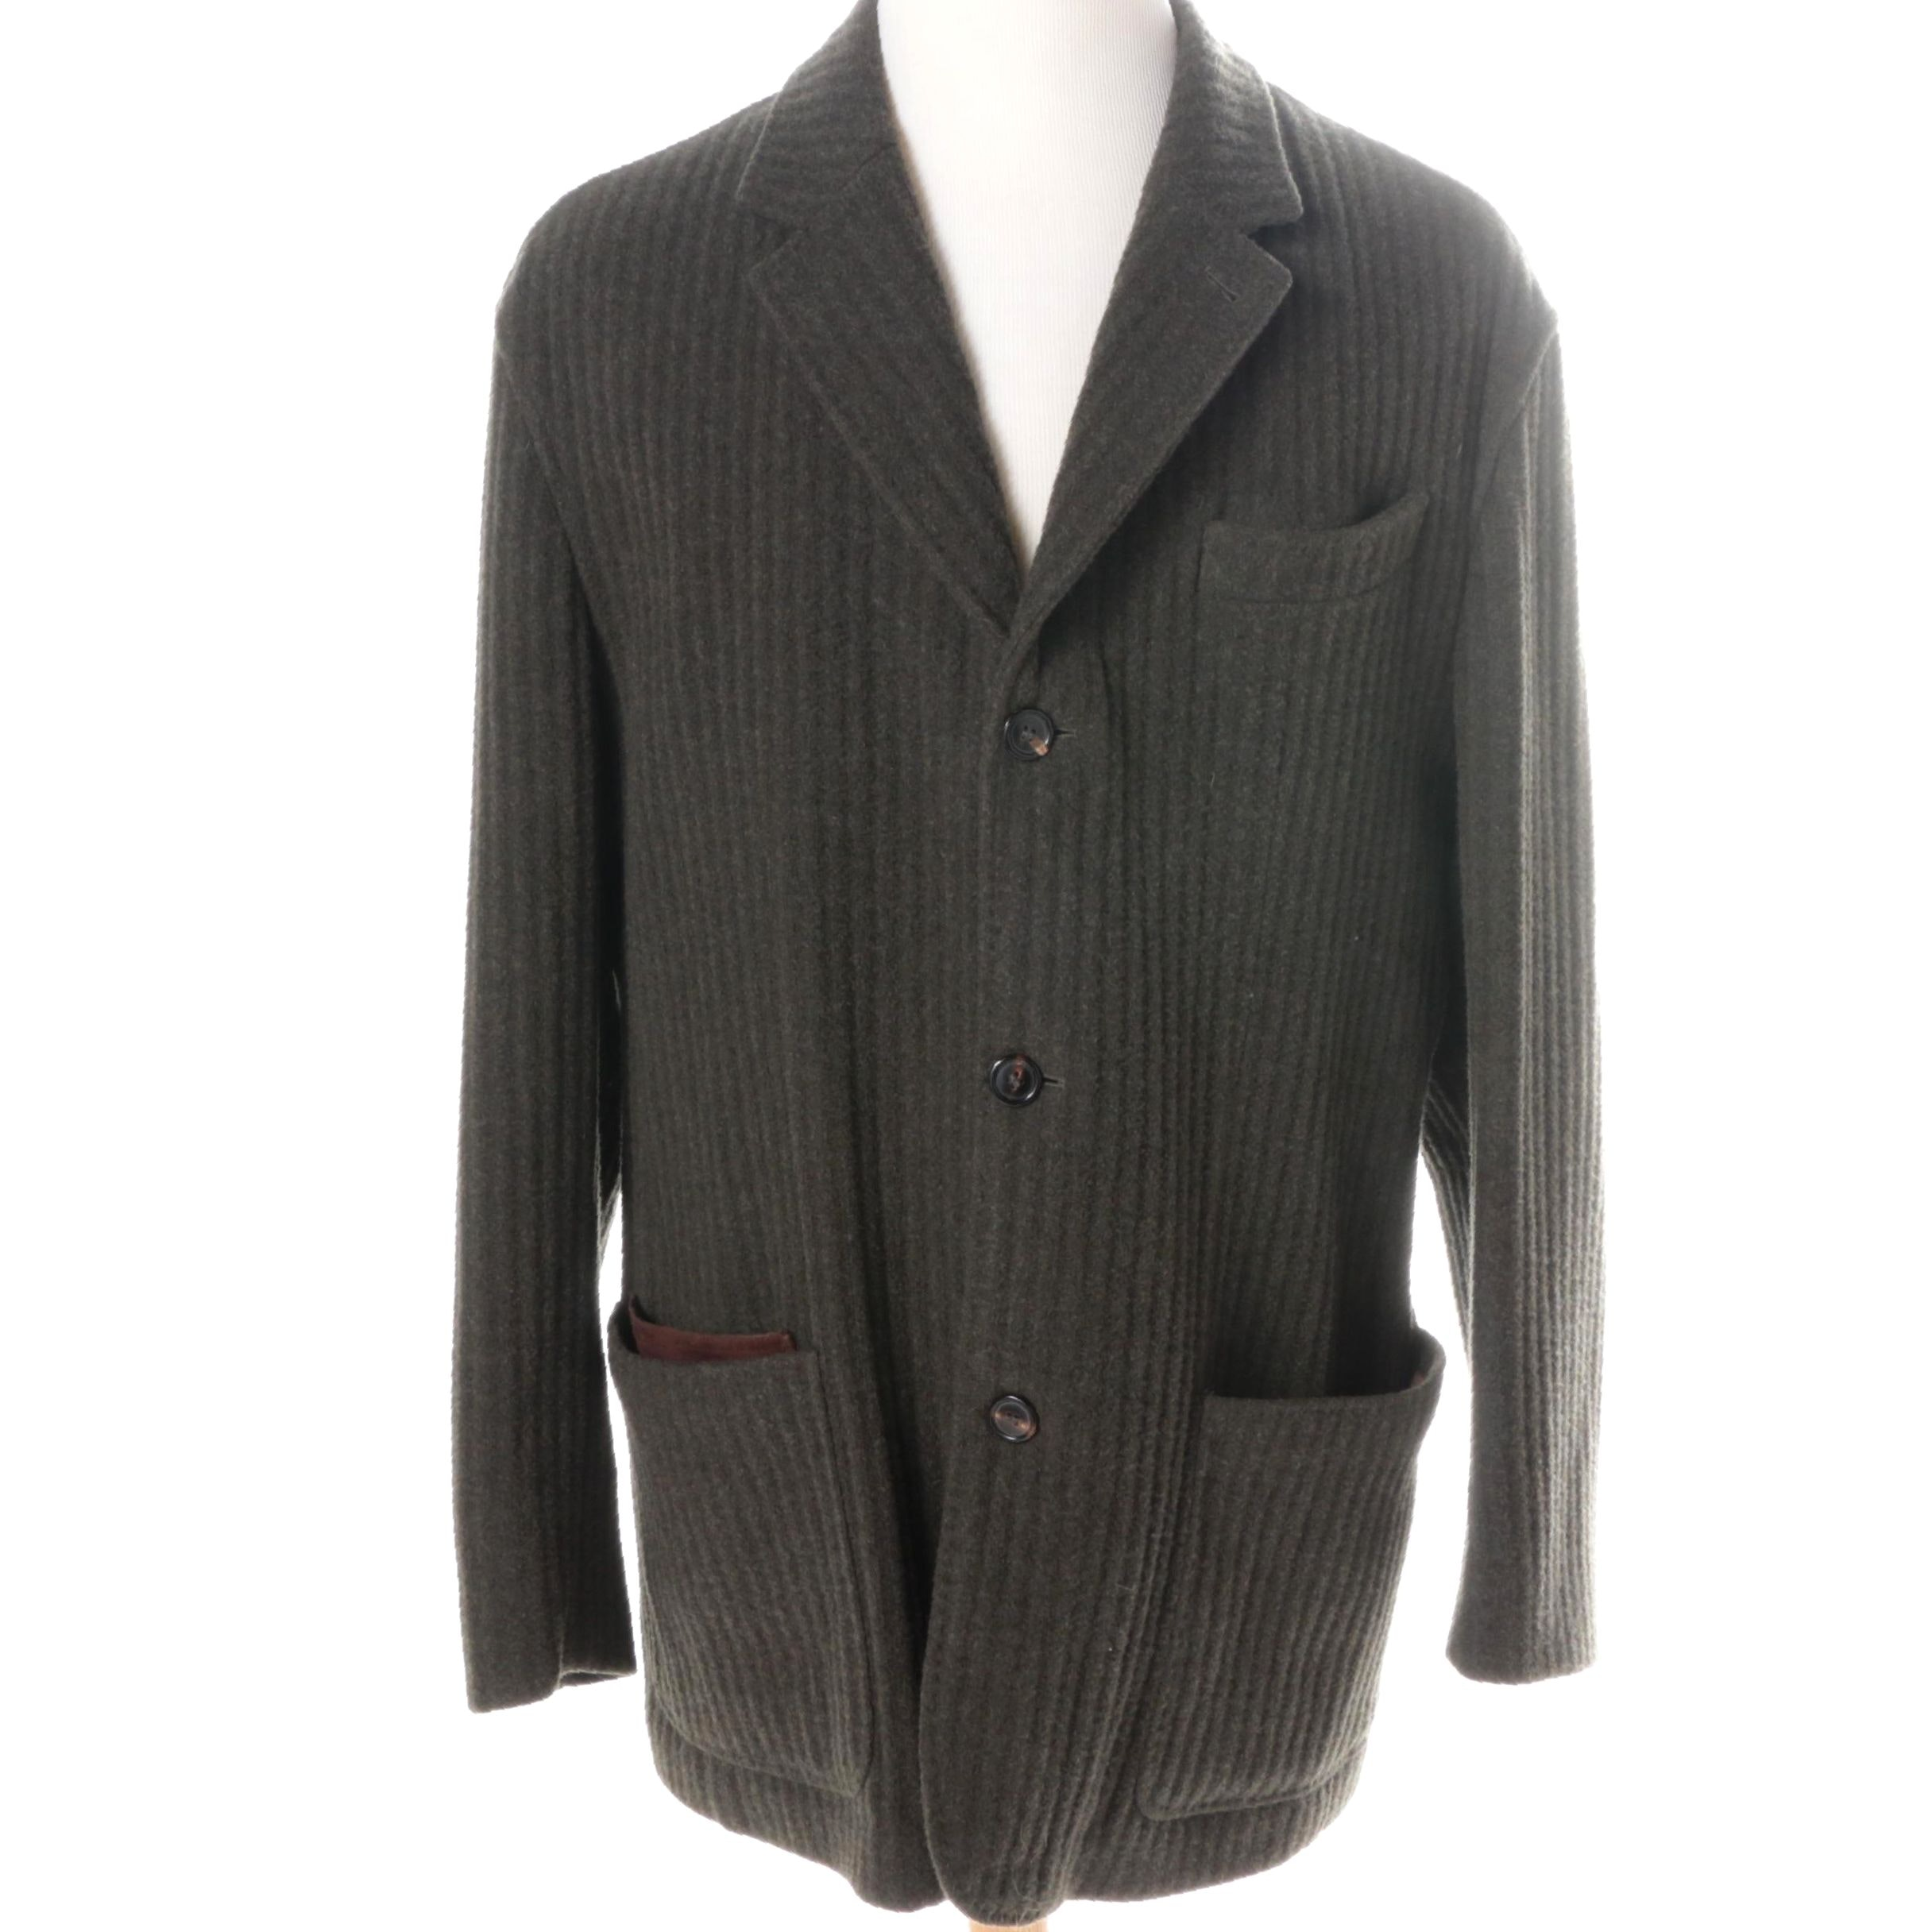 Men's Luciano Barbera Wool and Cashmere Lounge Jacket